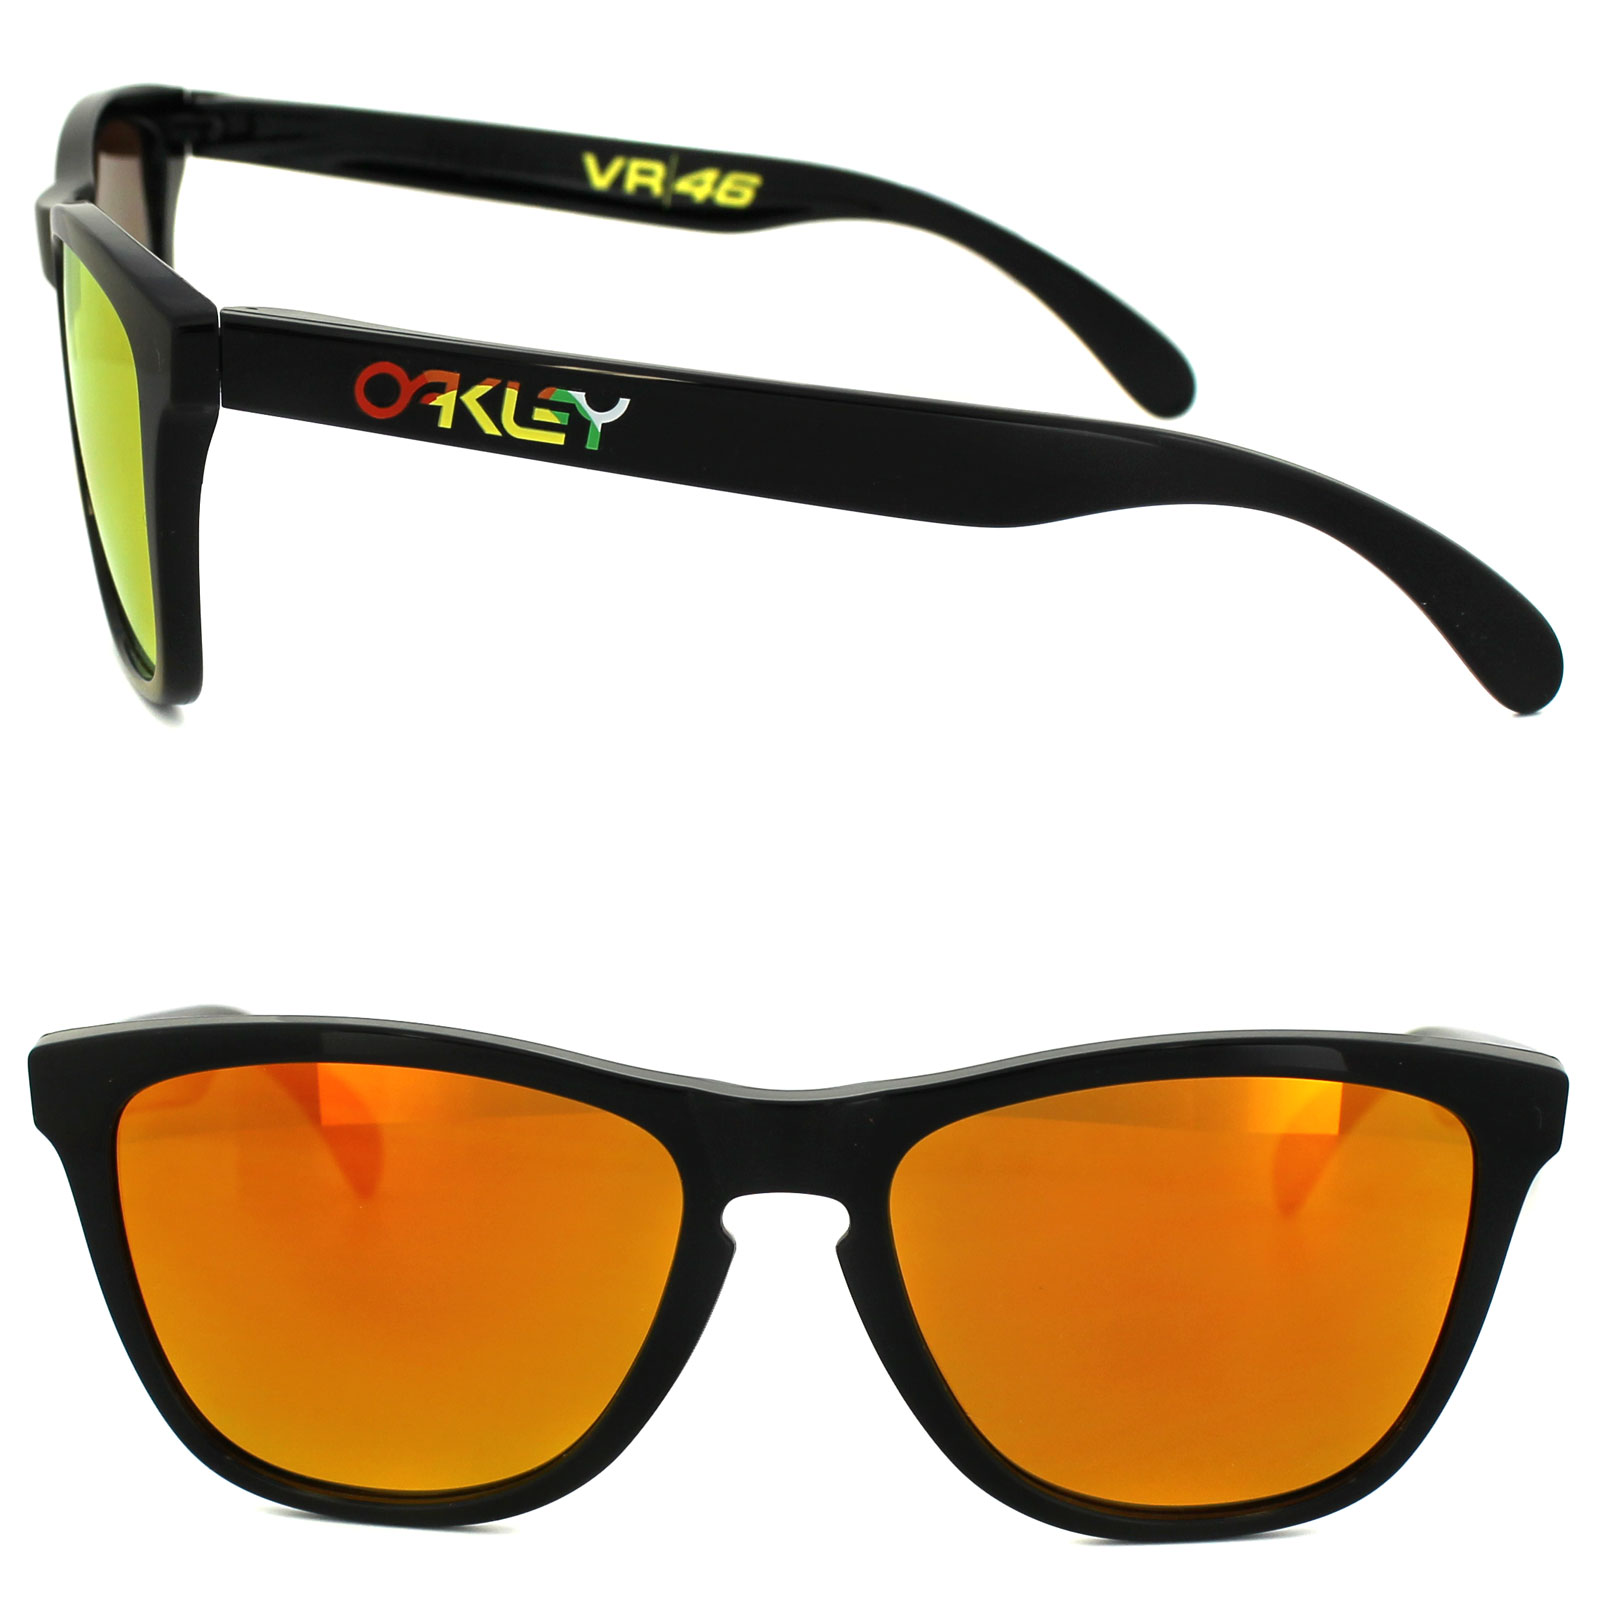 c28e83a6eb ... Oakley Sunglasses Frogskins 24-325 Polished Black Fire Iridium VR46  Thumbnail 2 ...